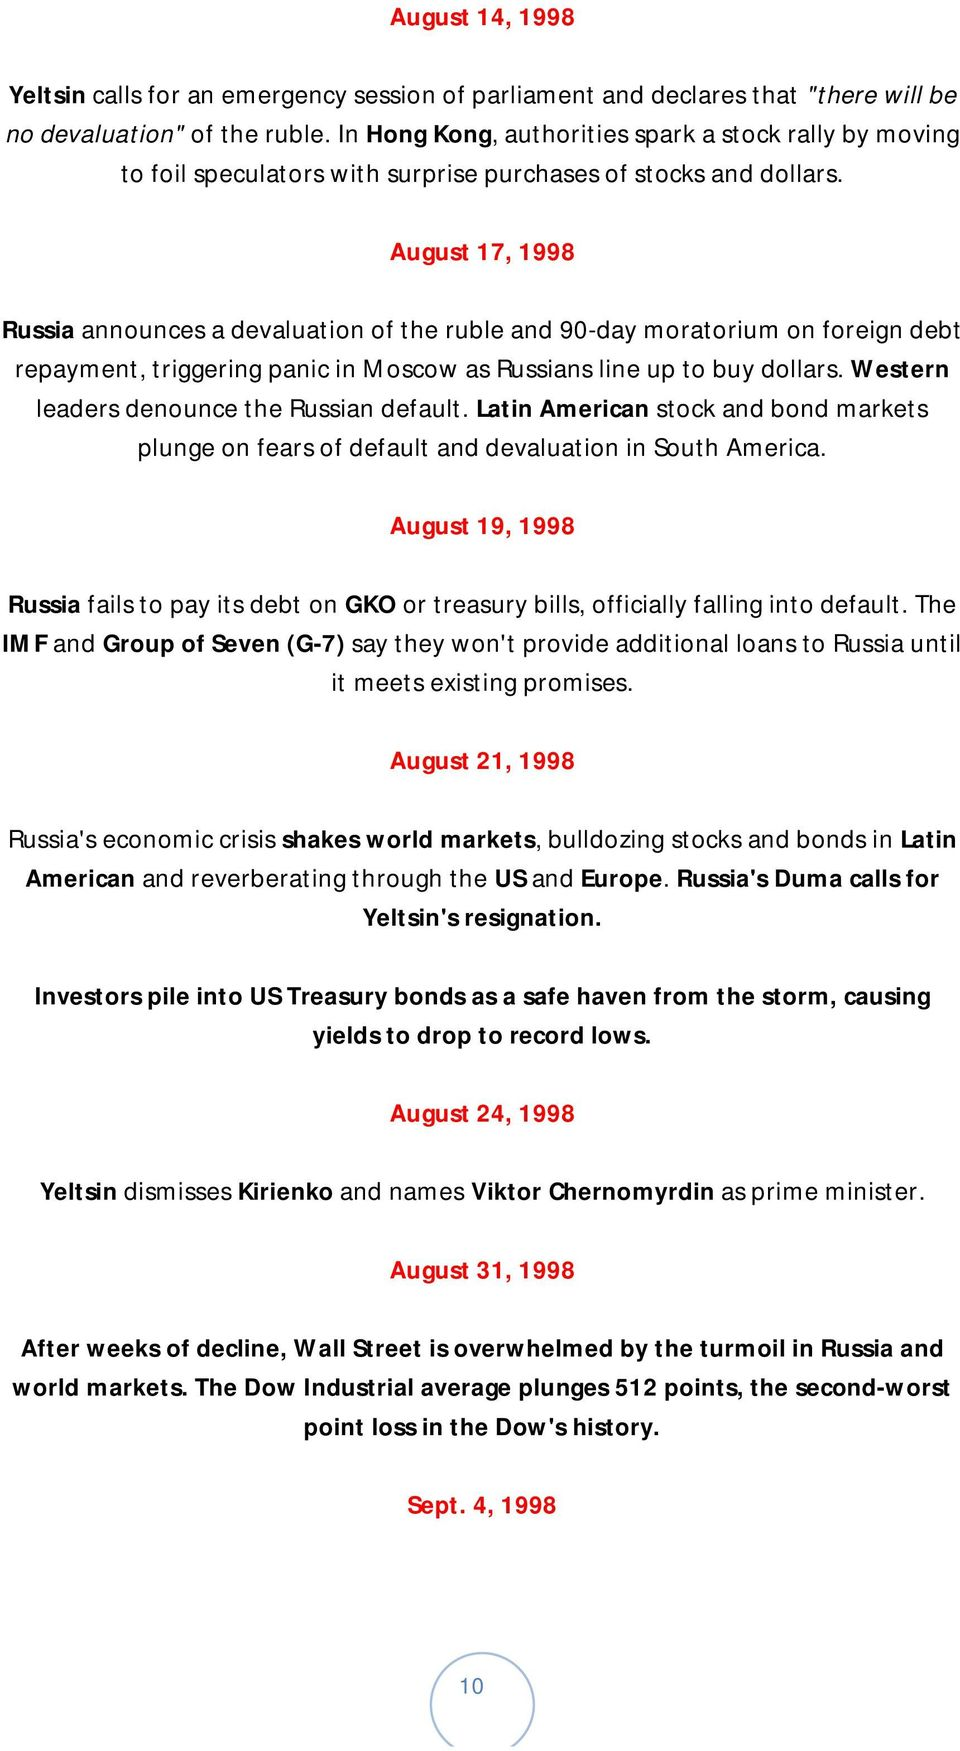 August 17, 1998 Russia announces a devaluation of the ruble and 90-day moratorium on foreign debt repayment, triggering panic in Moscow as Russians line up to buy dollars.